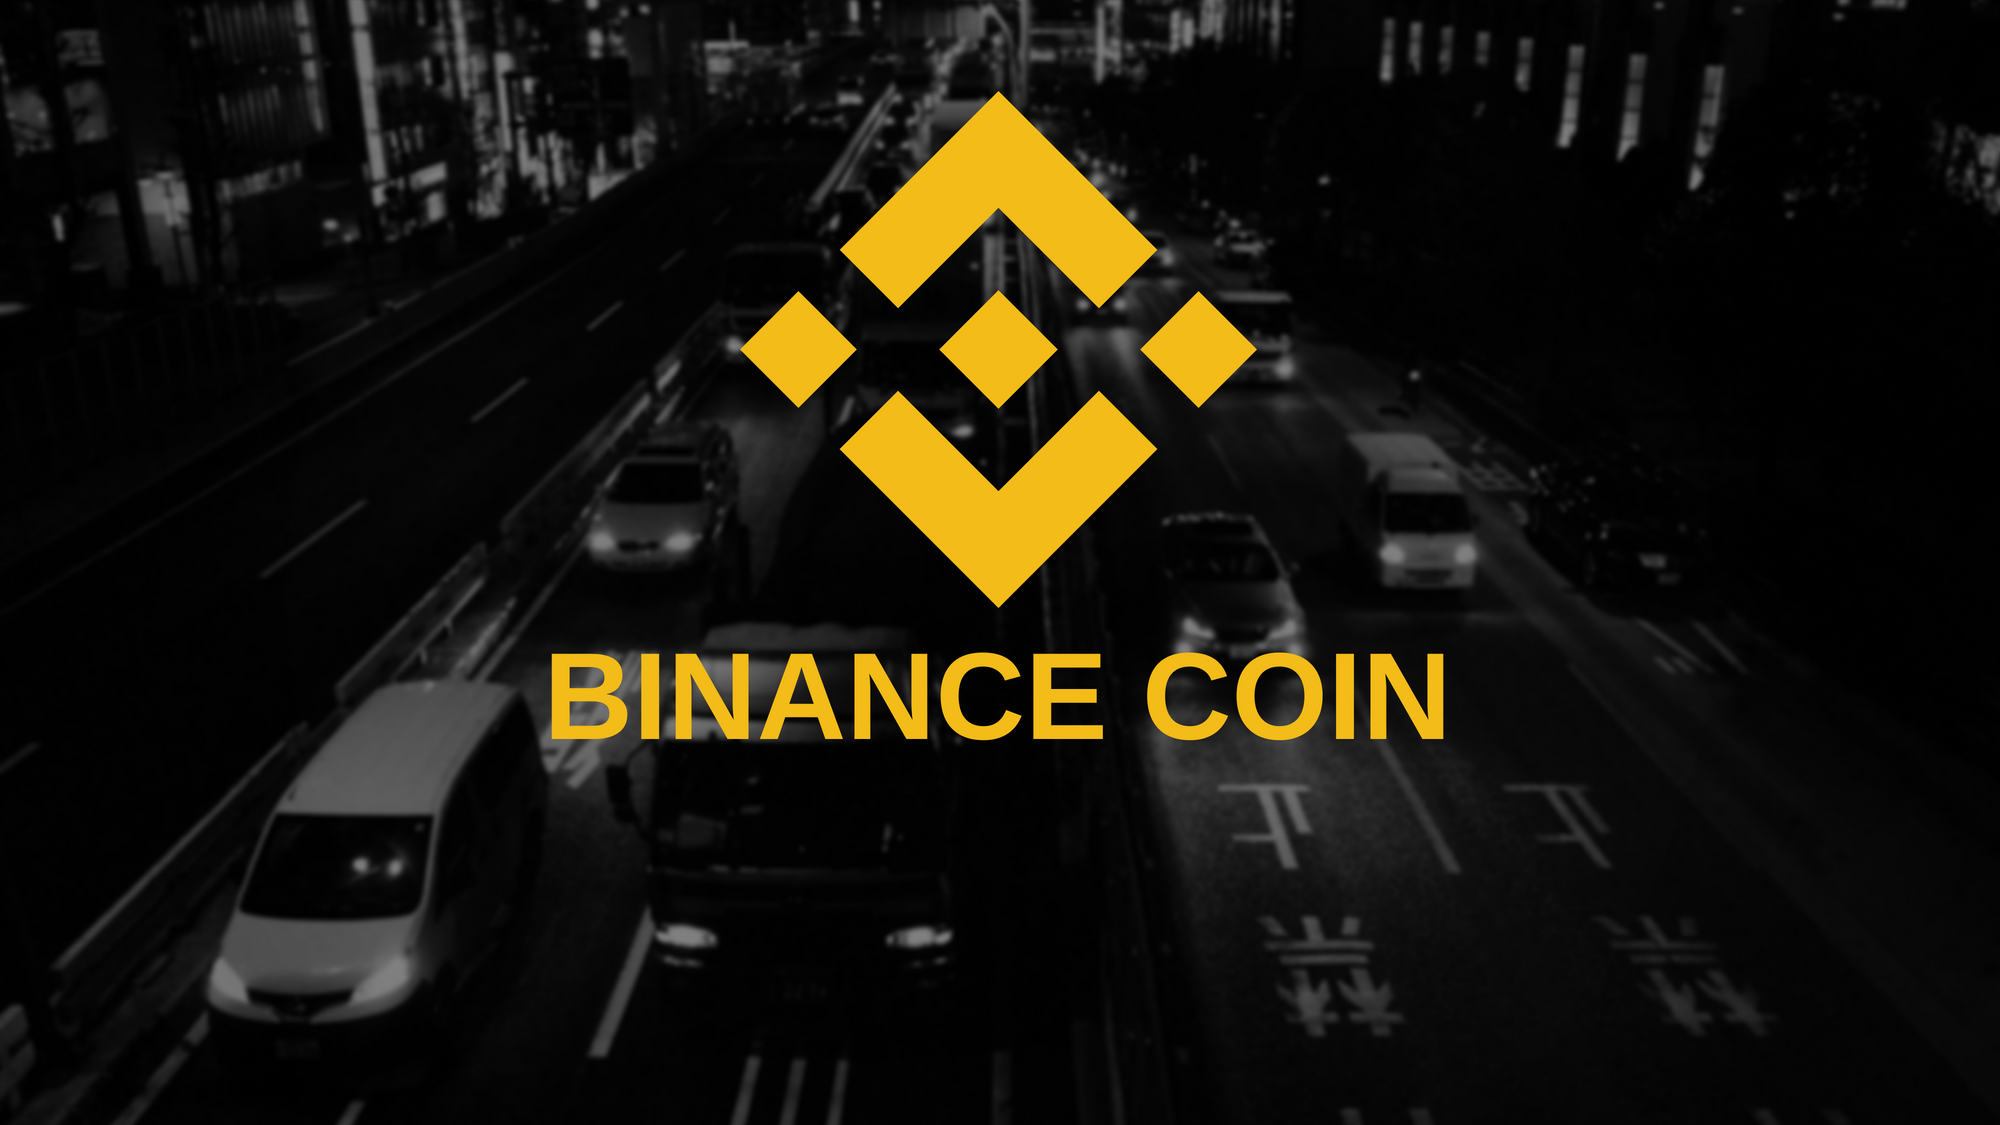 The new bitcoin? Binance Coin bucks market trends by doubling in price